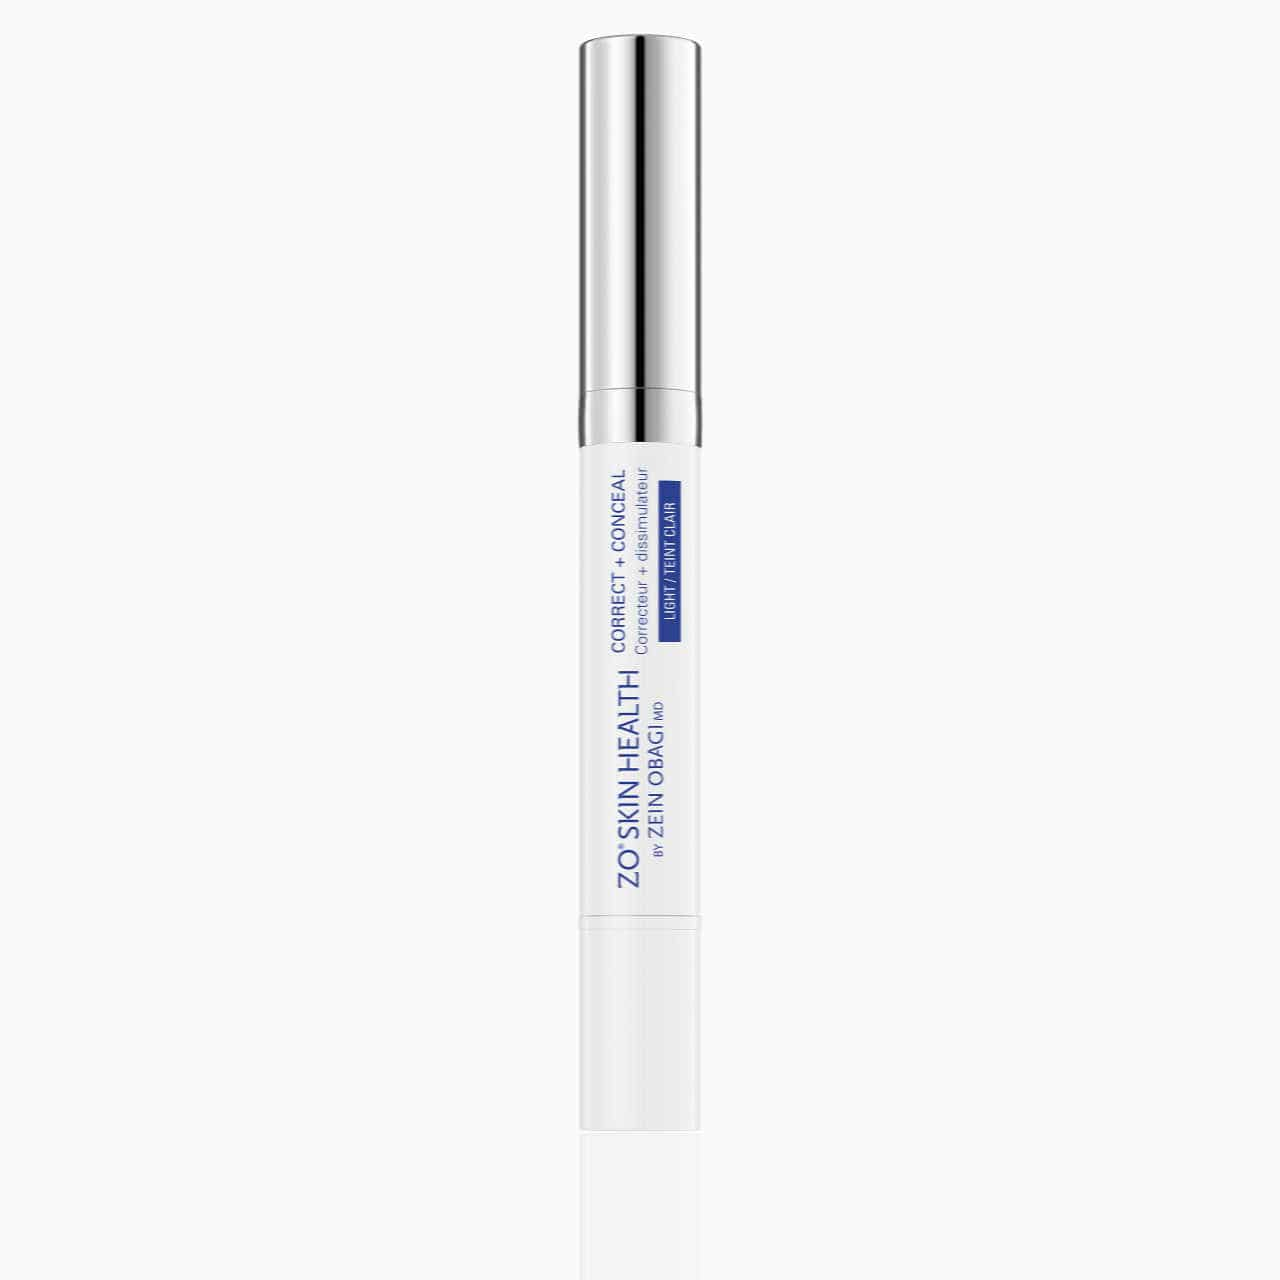 ZO Skin Health Correct & Conceal Acne Treatment